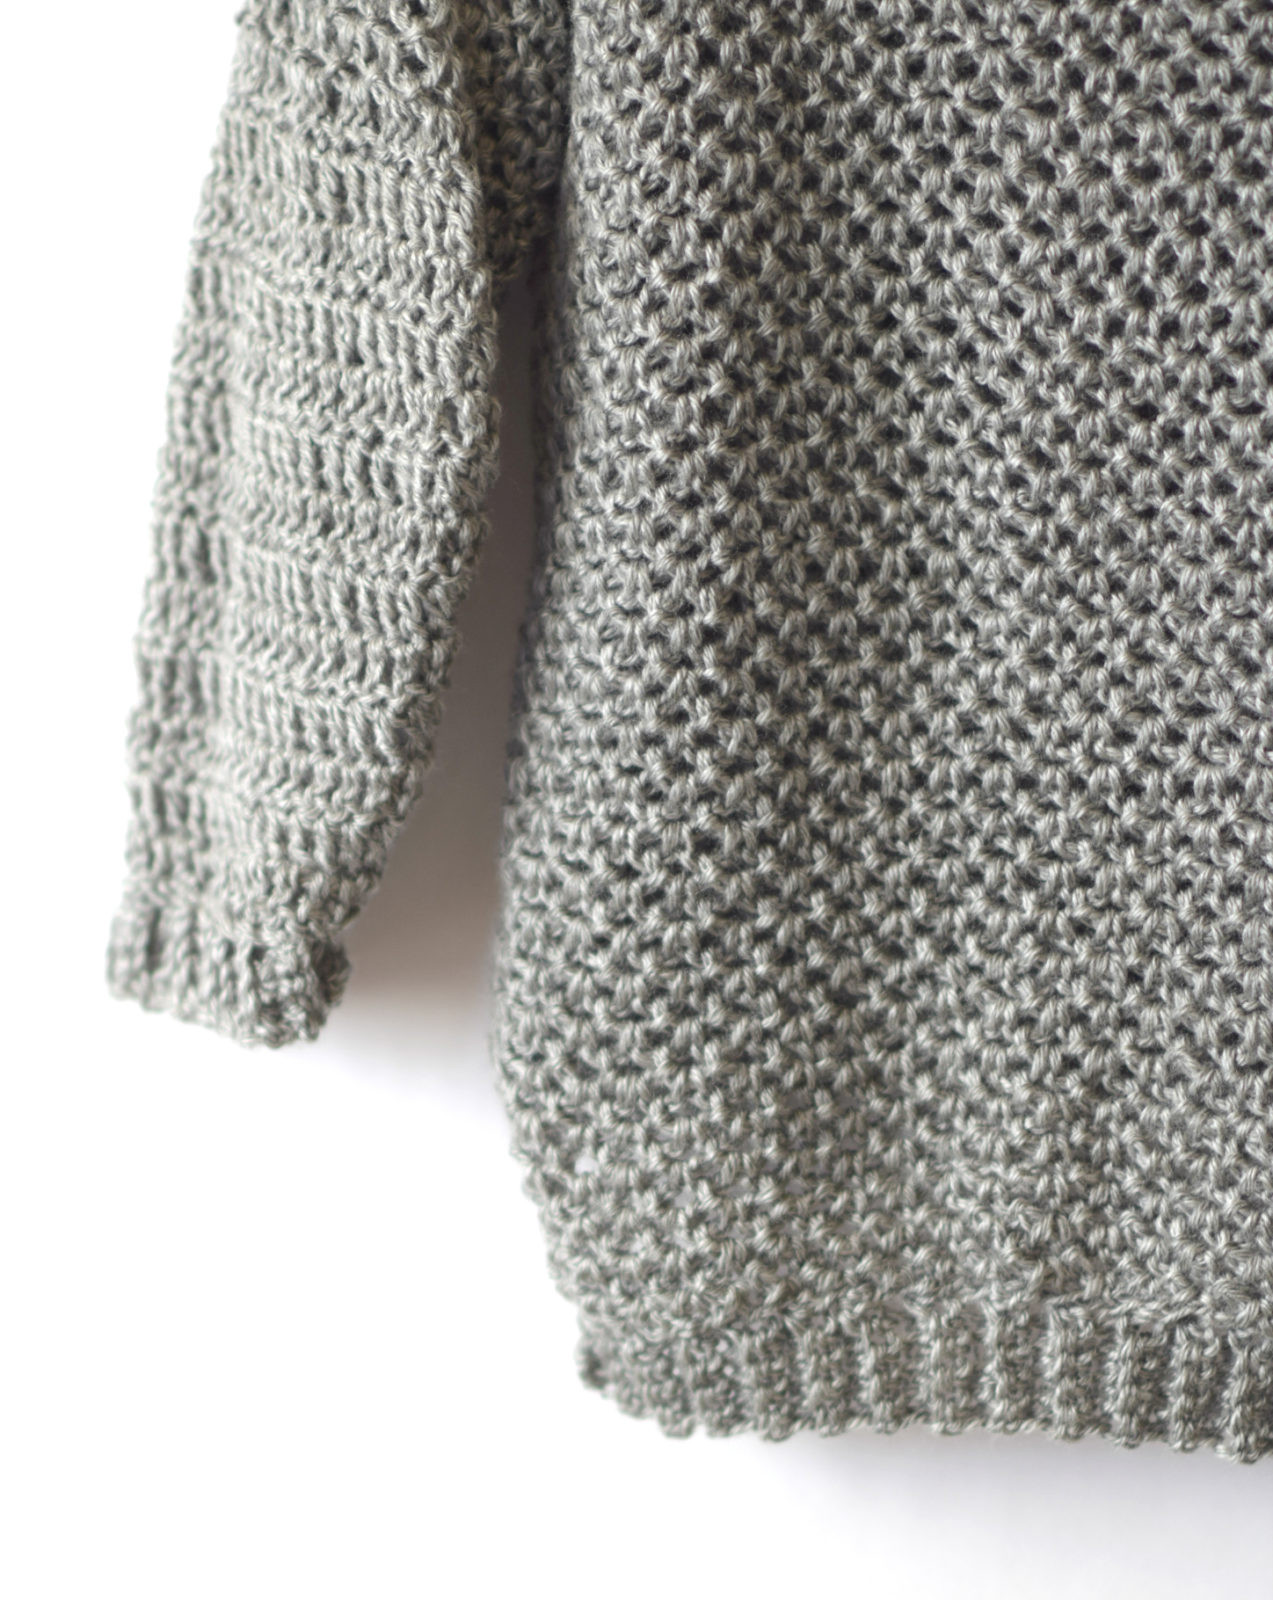 Sweater Crochet Patterns Lovely How to Make An Easy Crocheted Sweater Knit Like – Mama Of Amazing 49 Pictures Sweater Crochet Patterns